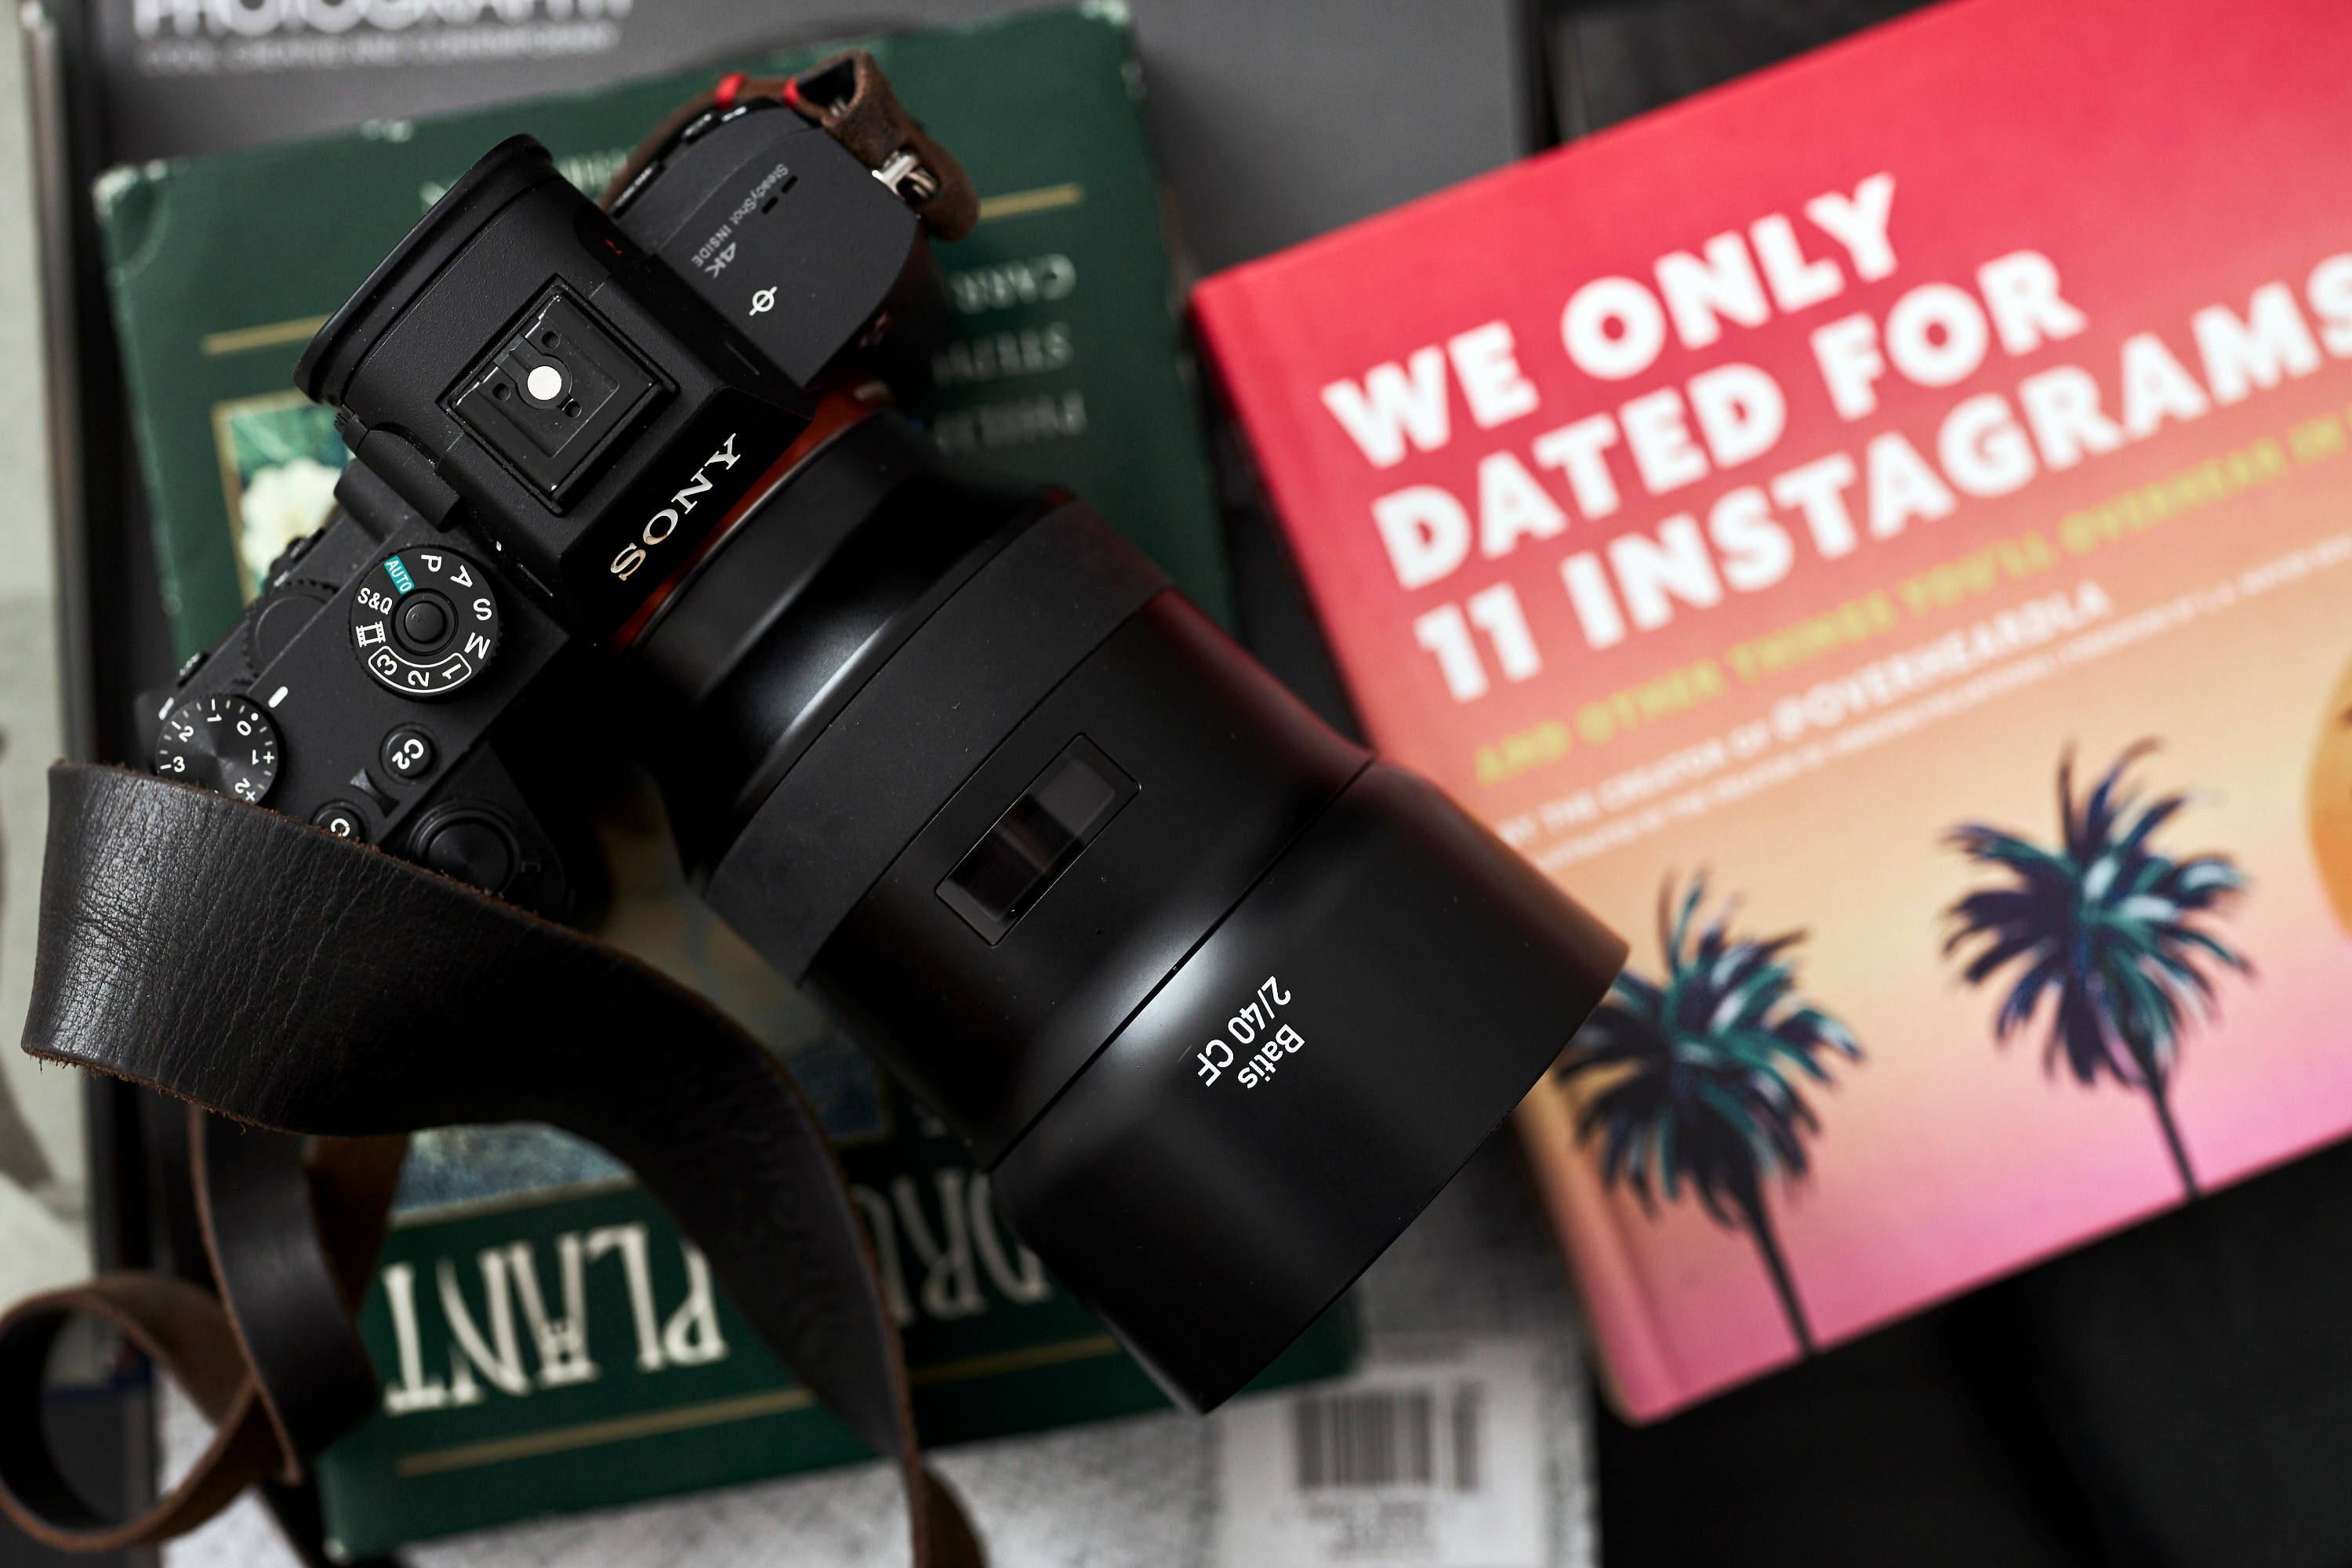 The New Normal? These 40mm Primes Make A Strong Case